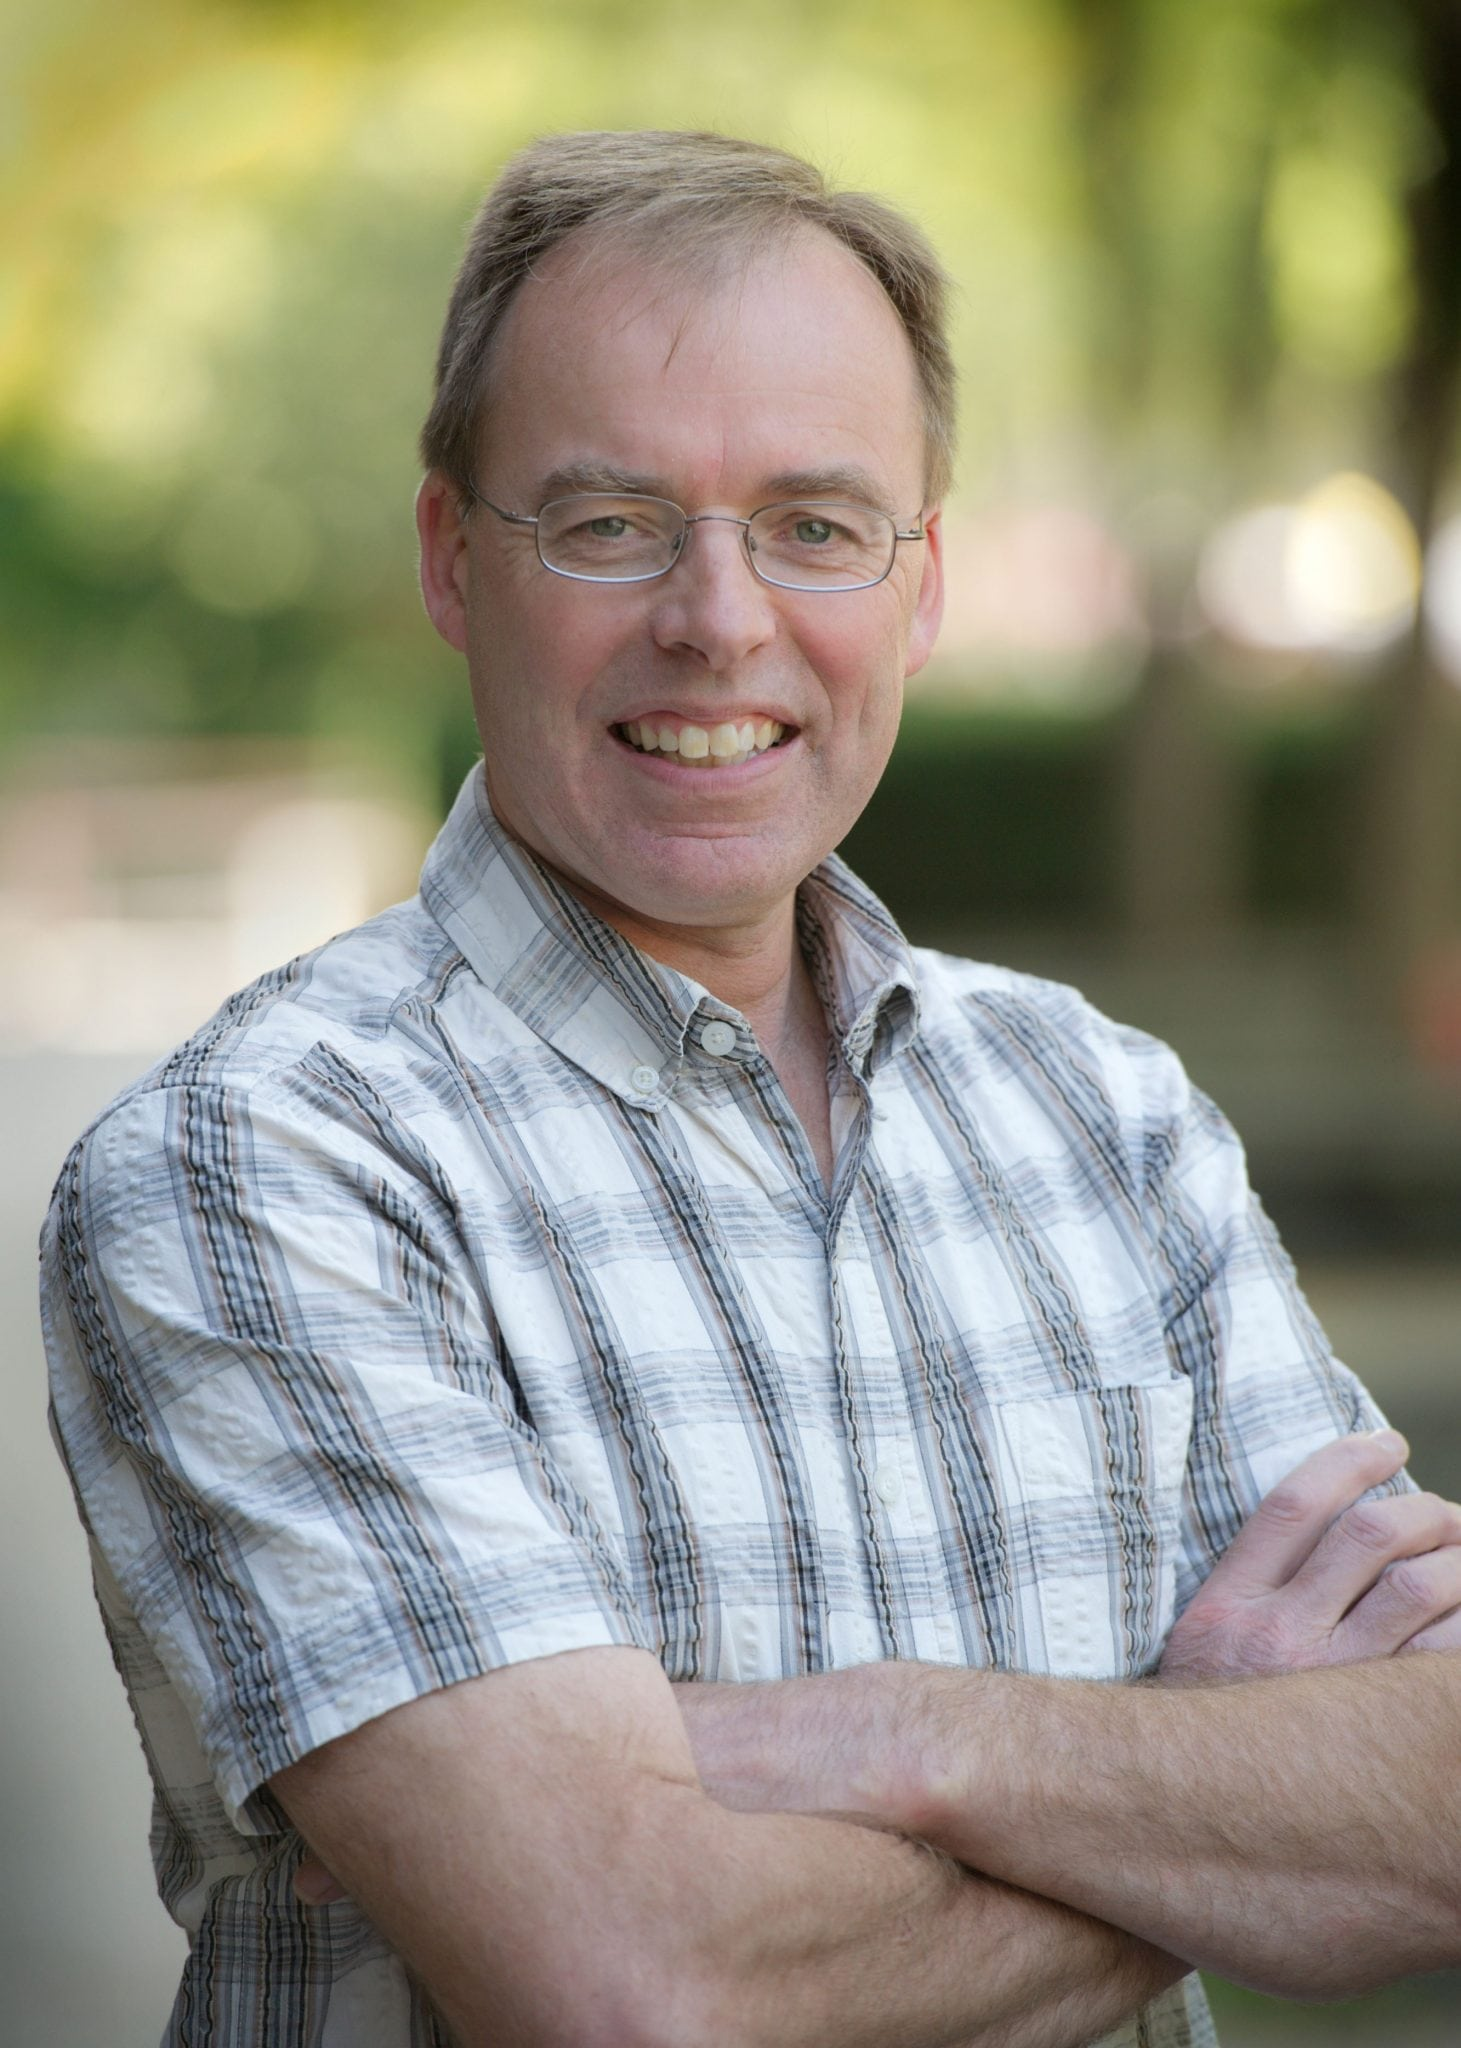 Photo of Prof. Bill Deen smiling with arms crossed and wearing a plaid shirt